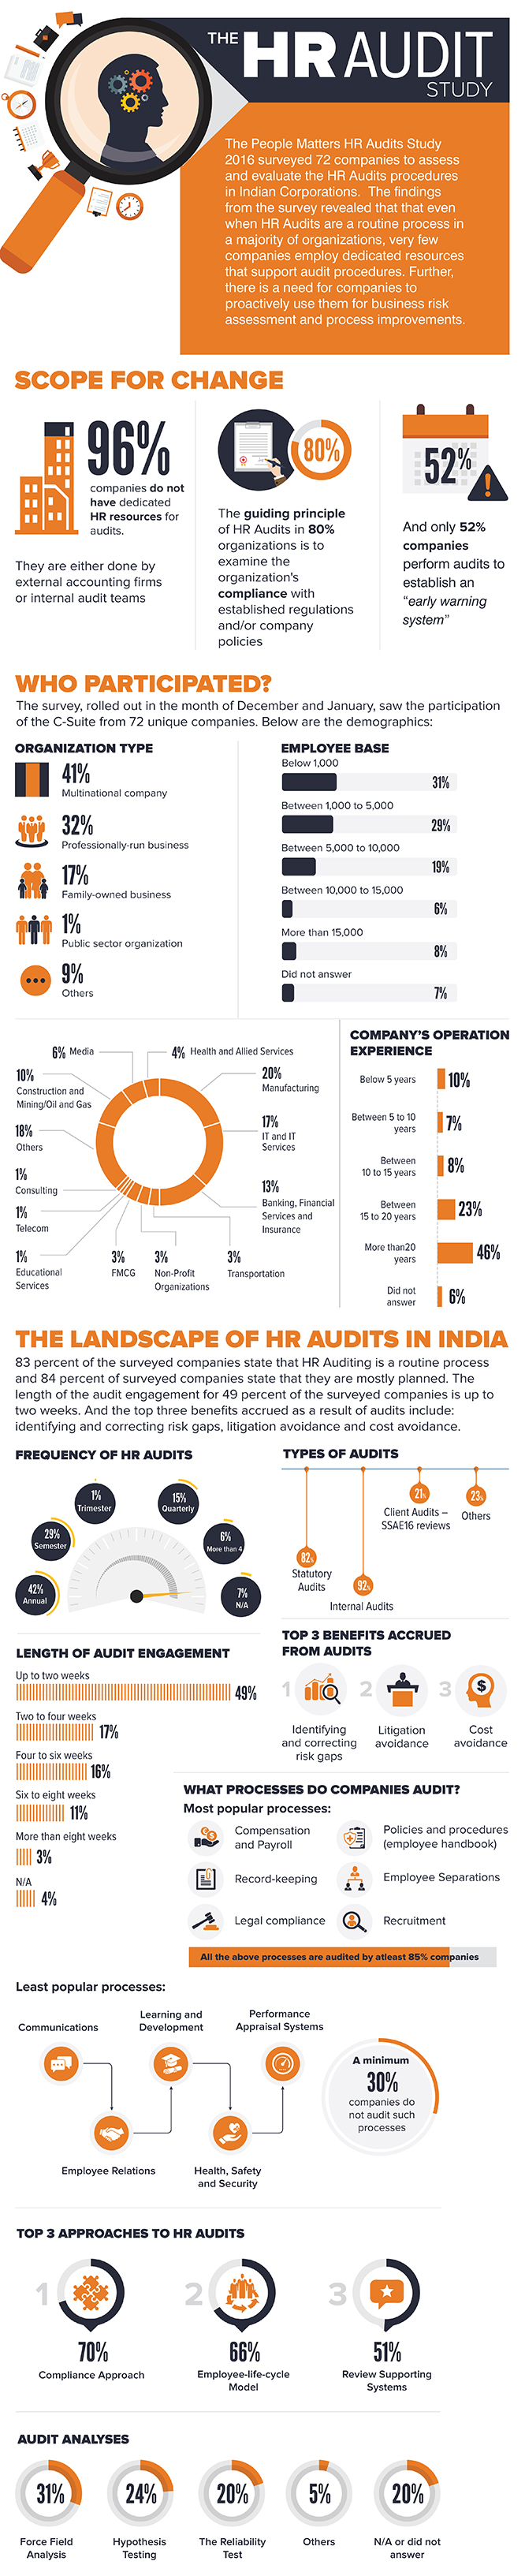 research on hr audit Human resources staff should conduct periodic departmental audits to ensure the organization's compliance with employment regulations and human resources best practices audit processes and.